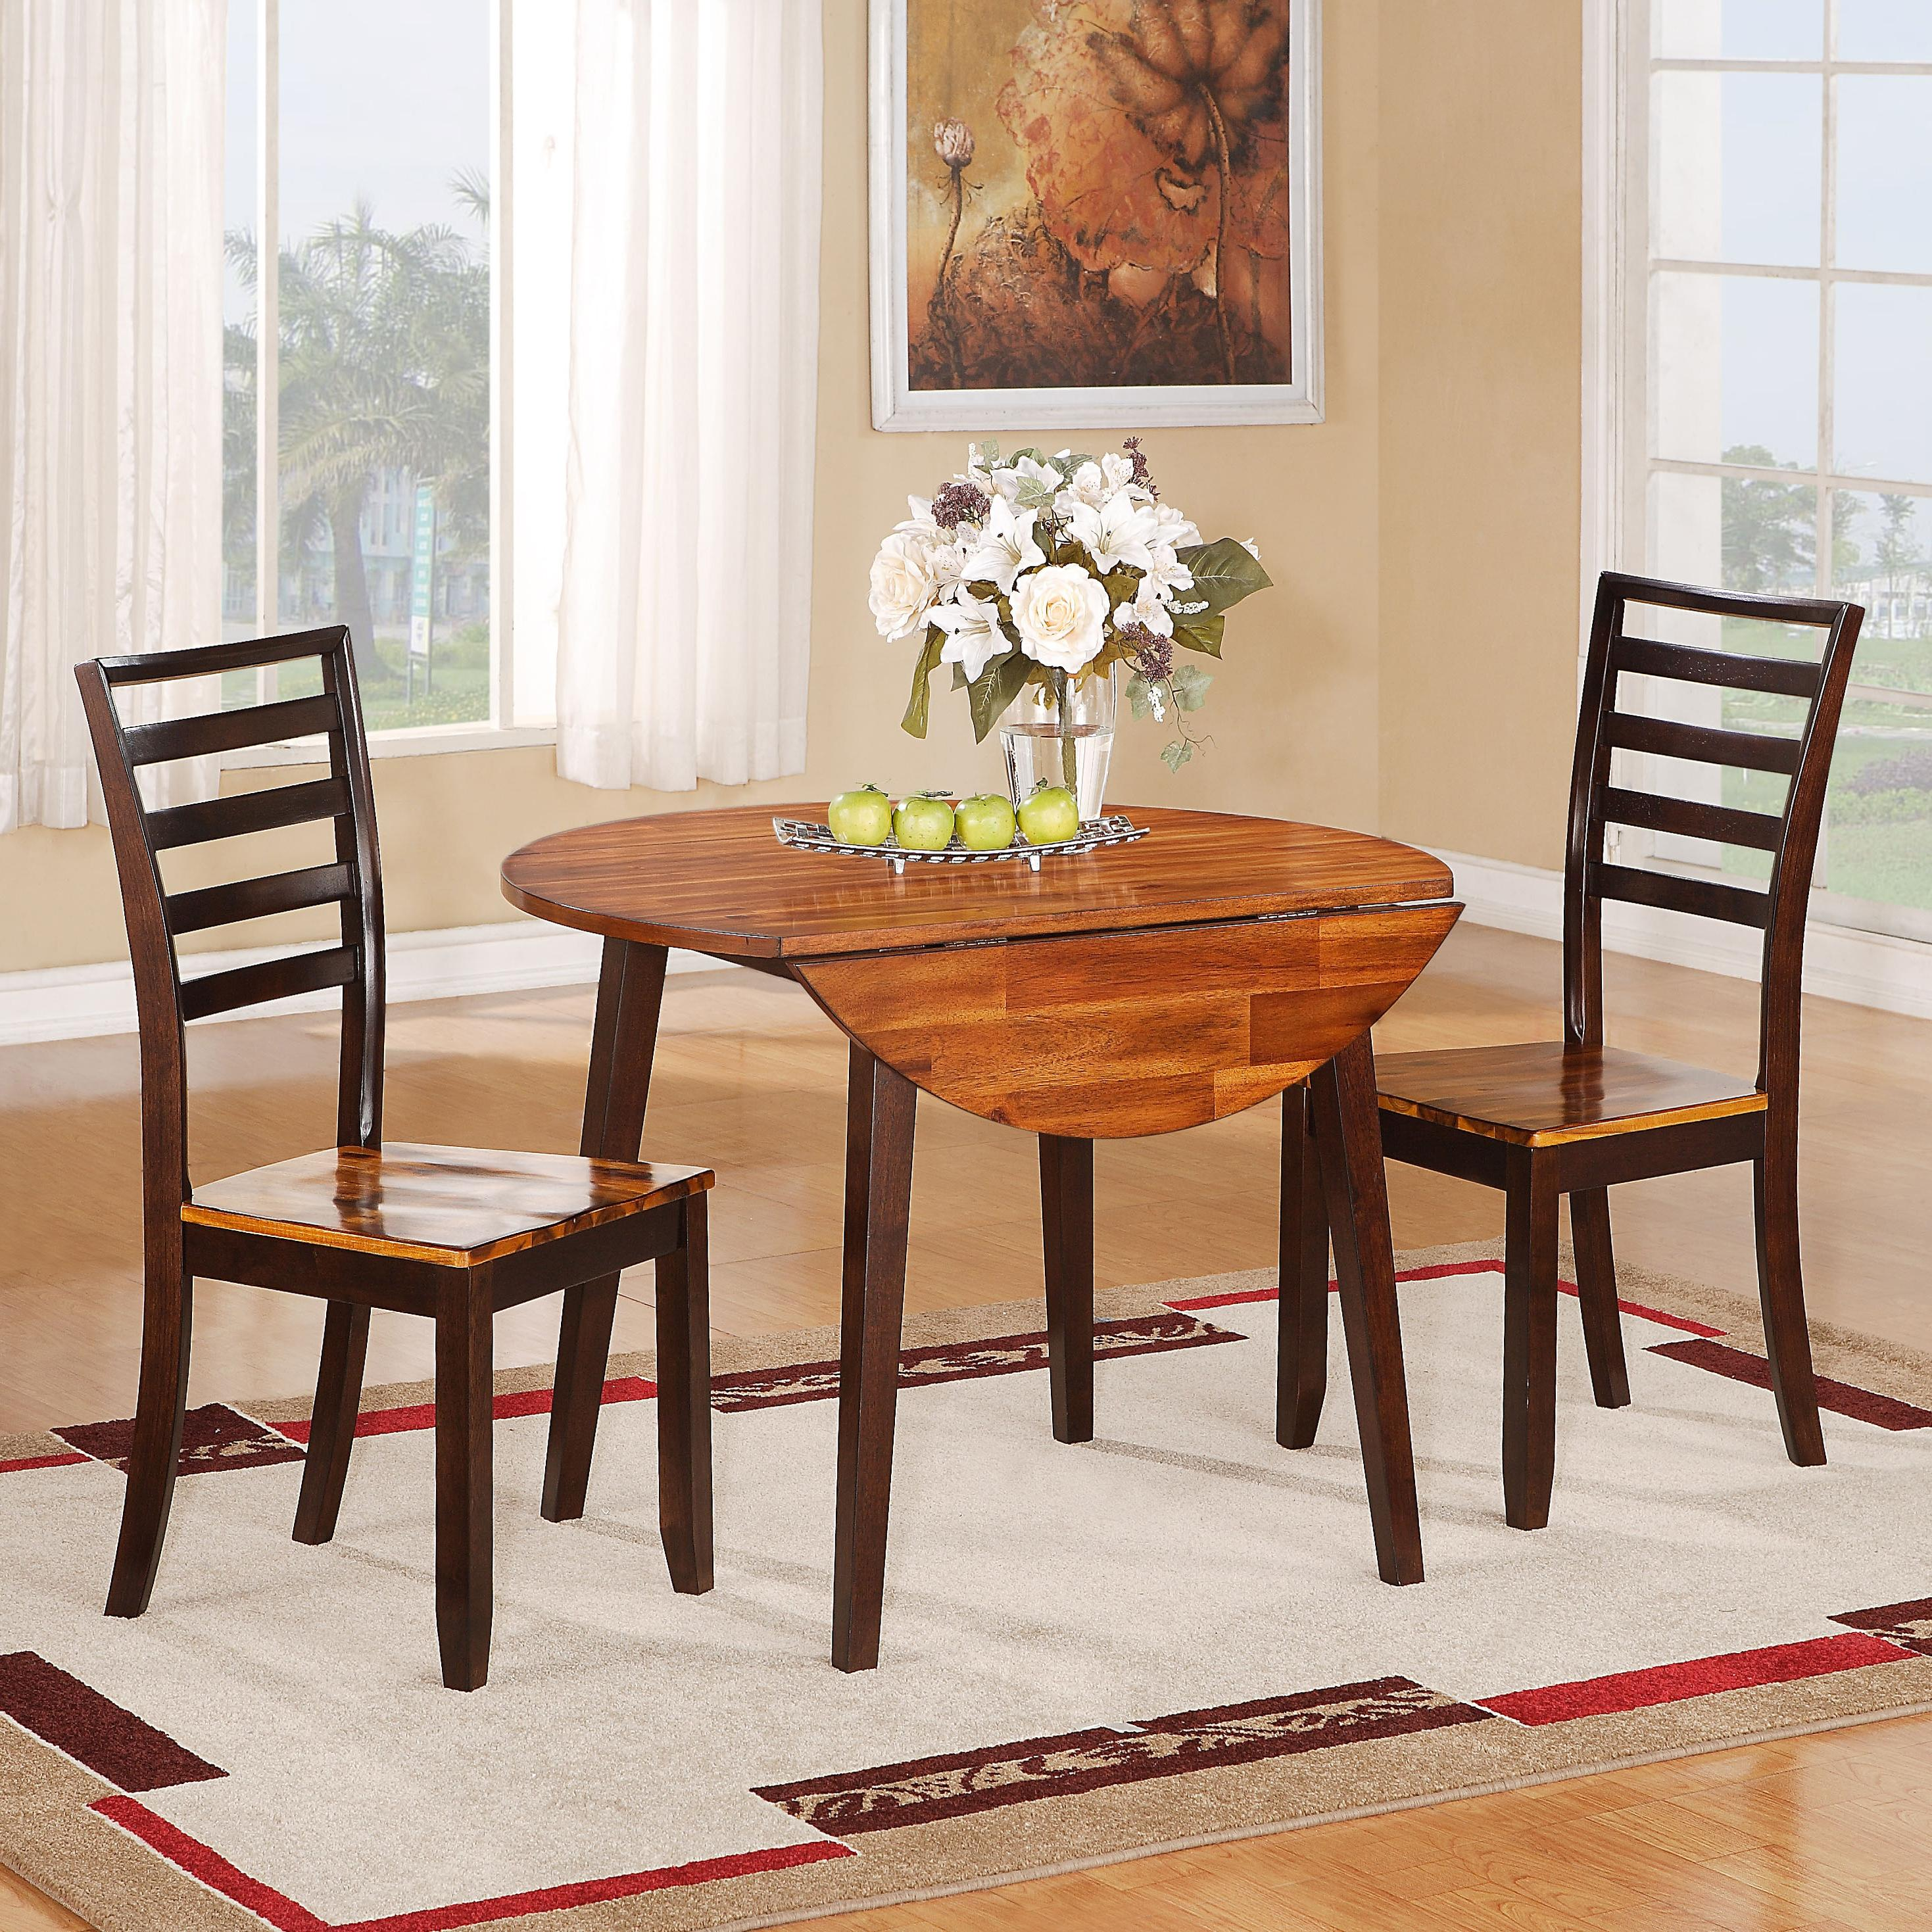 Greer Greer Table + 2 Chairs by HH at Walker's Furniture